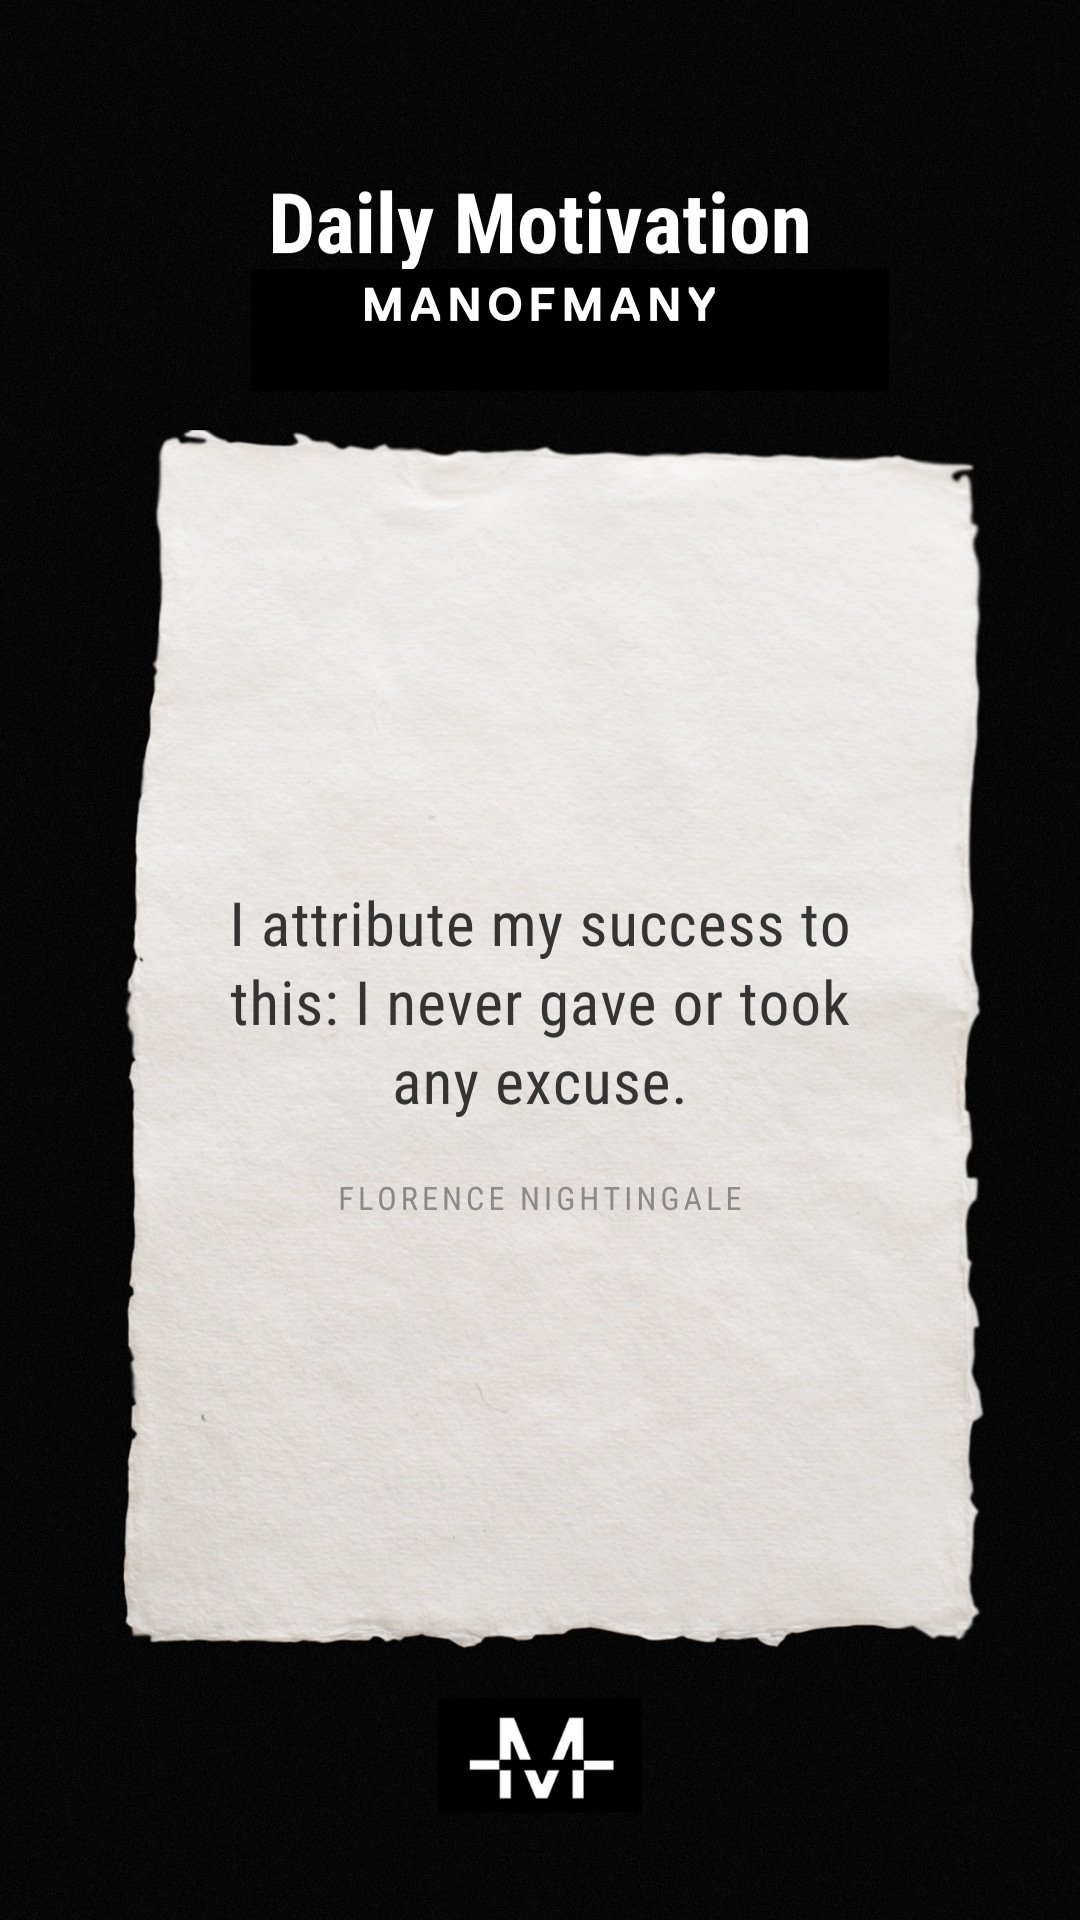 I attribute my success to this: I never gave or took any excuse. –Florence Nightingale quote